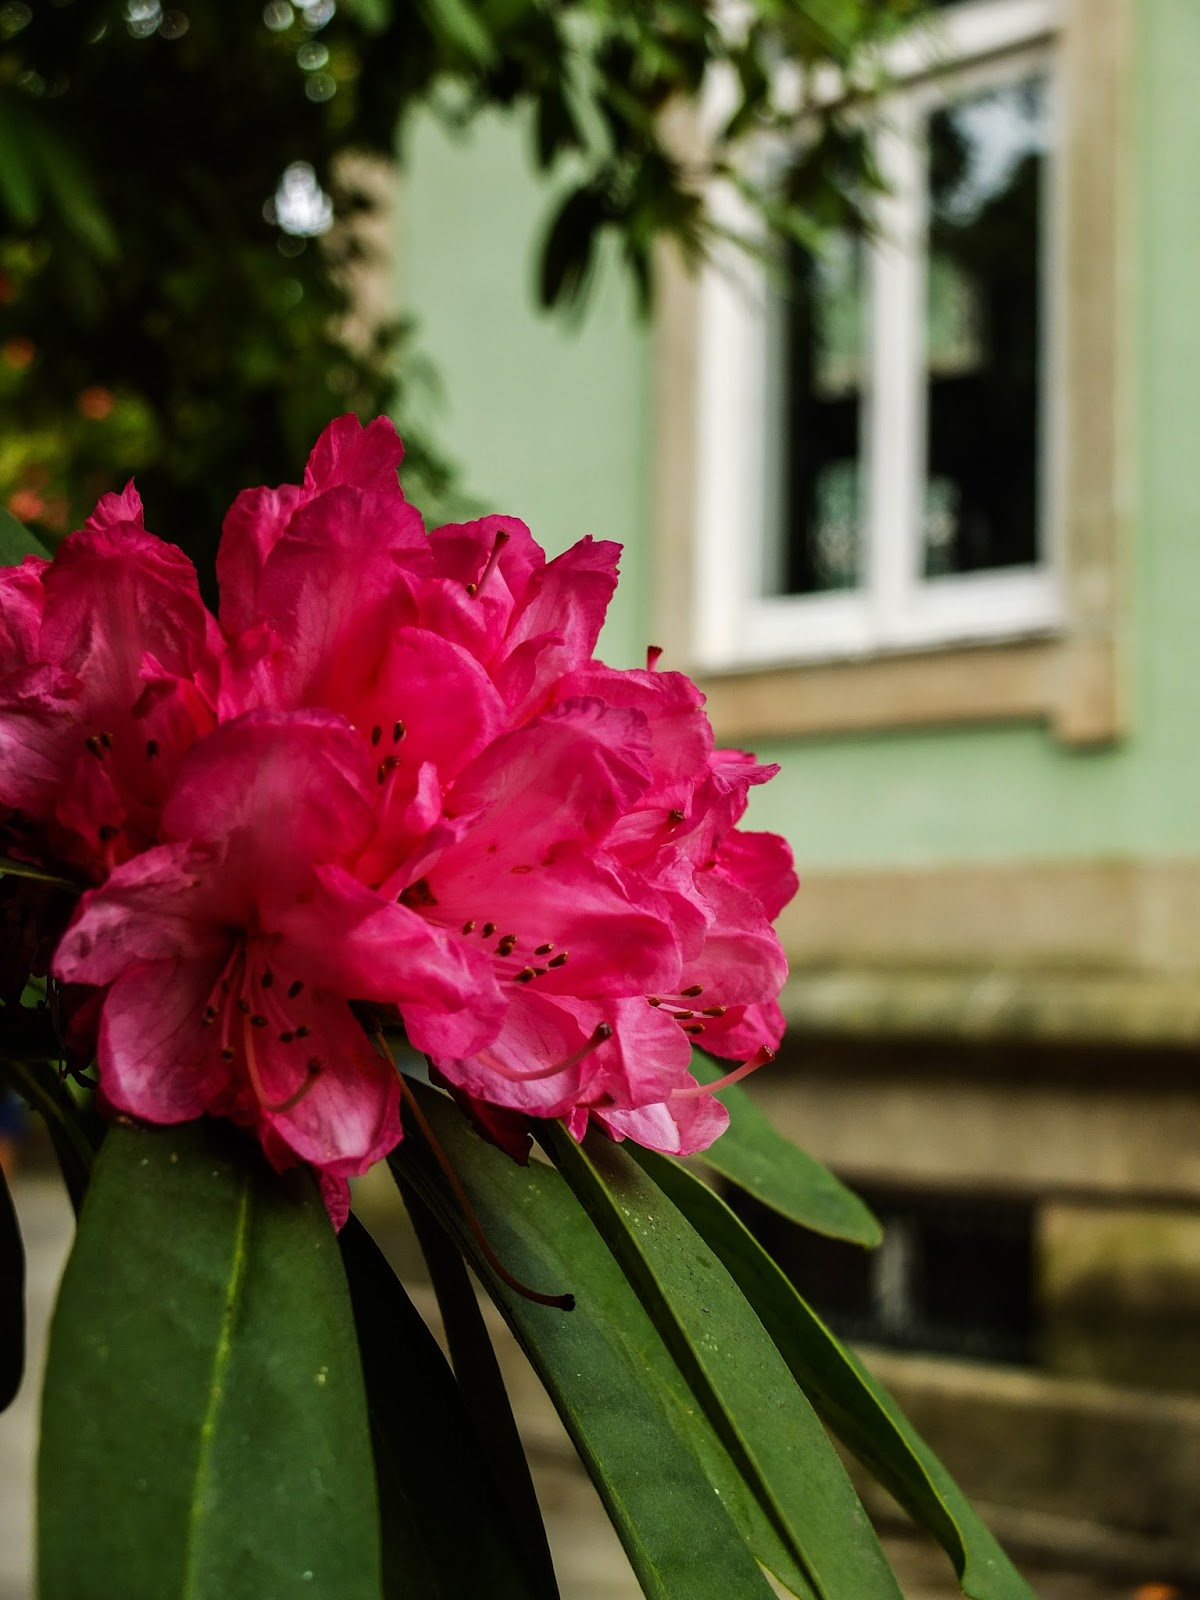 A pink rhododendron bunch in front of a building in Porto, Portugal.